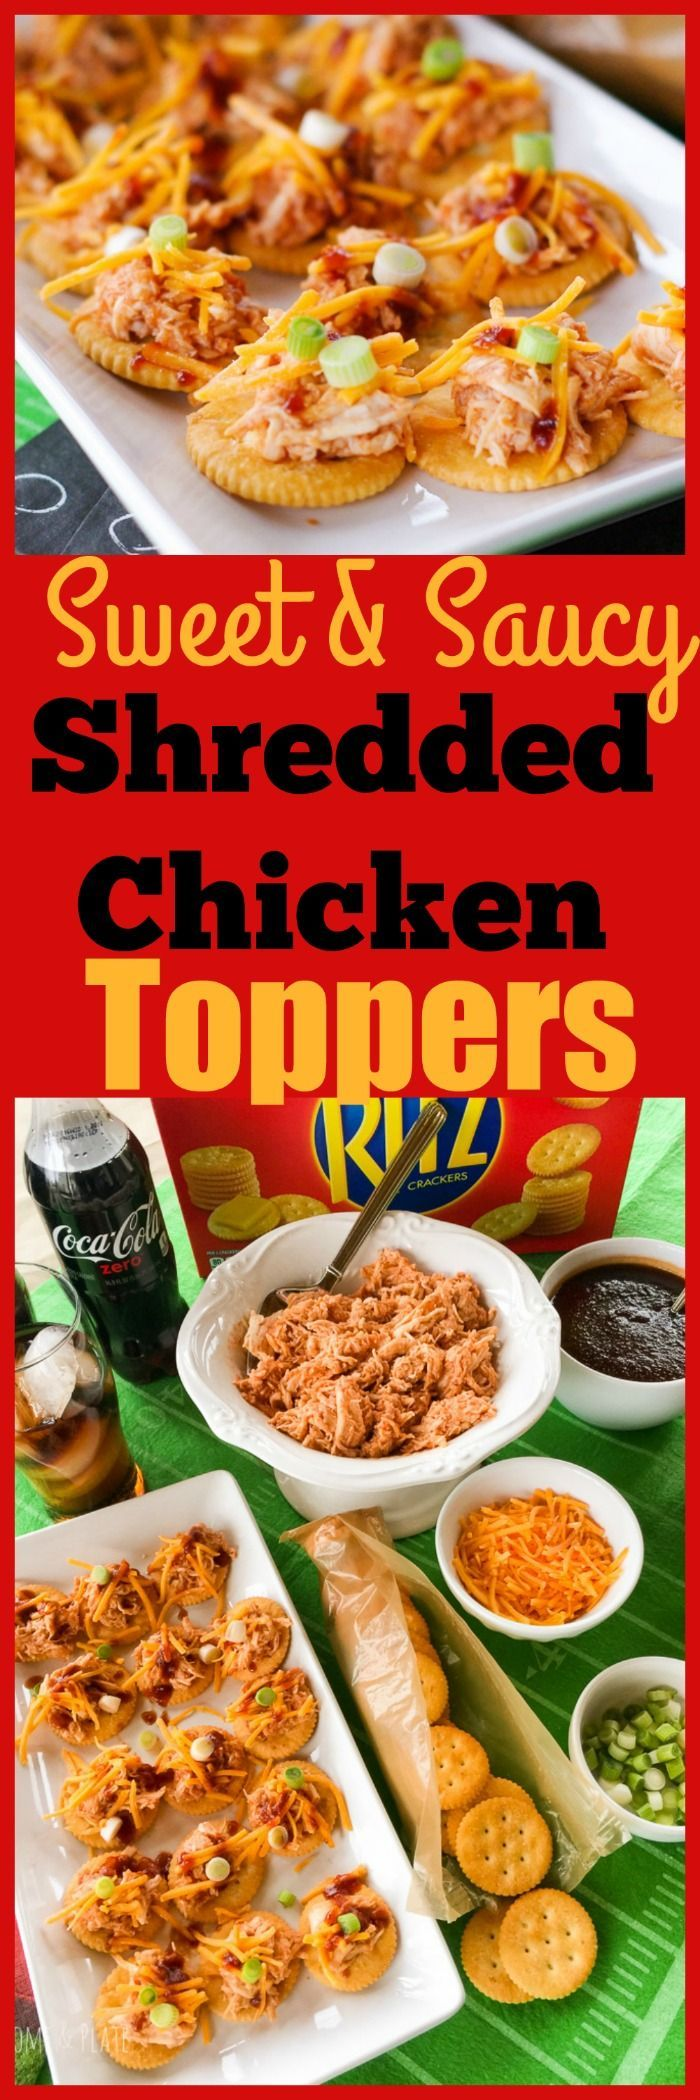 Sweet & Saucy Shredded Chicken Toppers